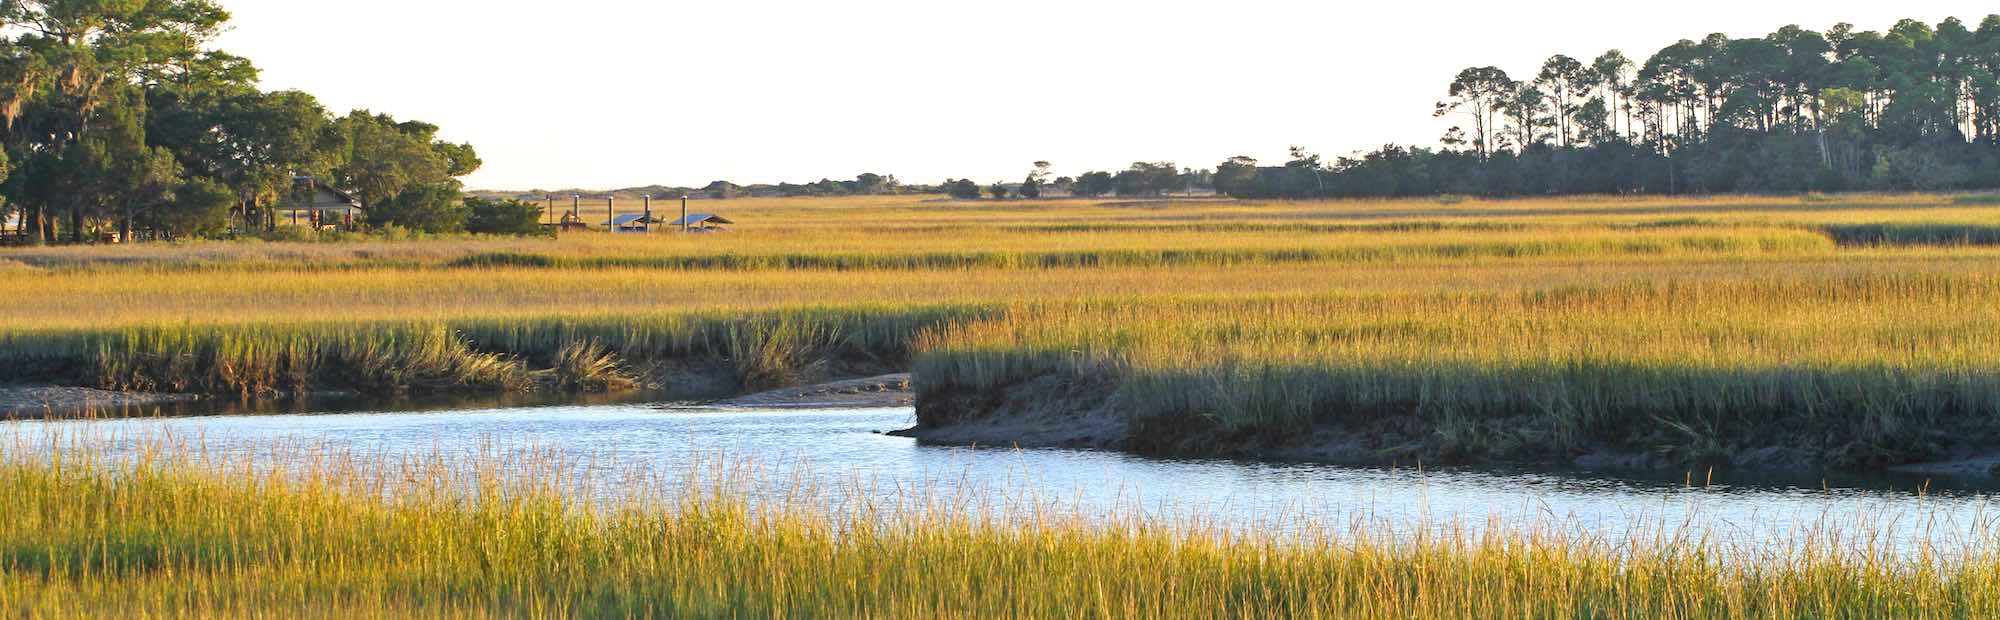 Creek winding through a lowcountry salt marsh.